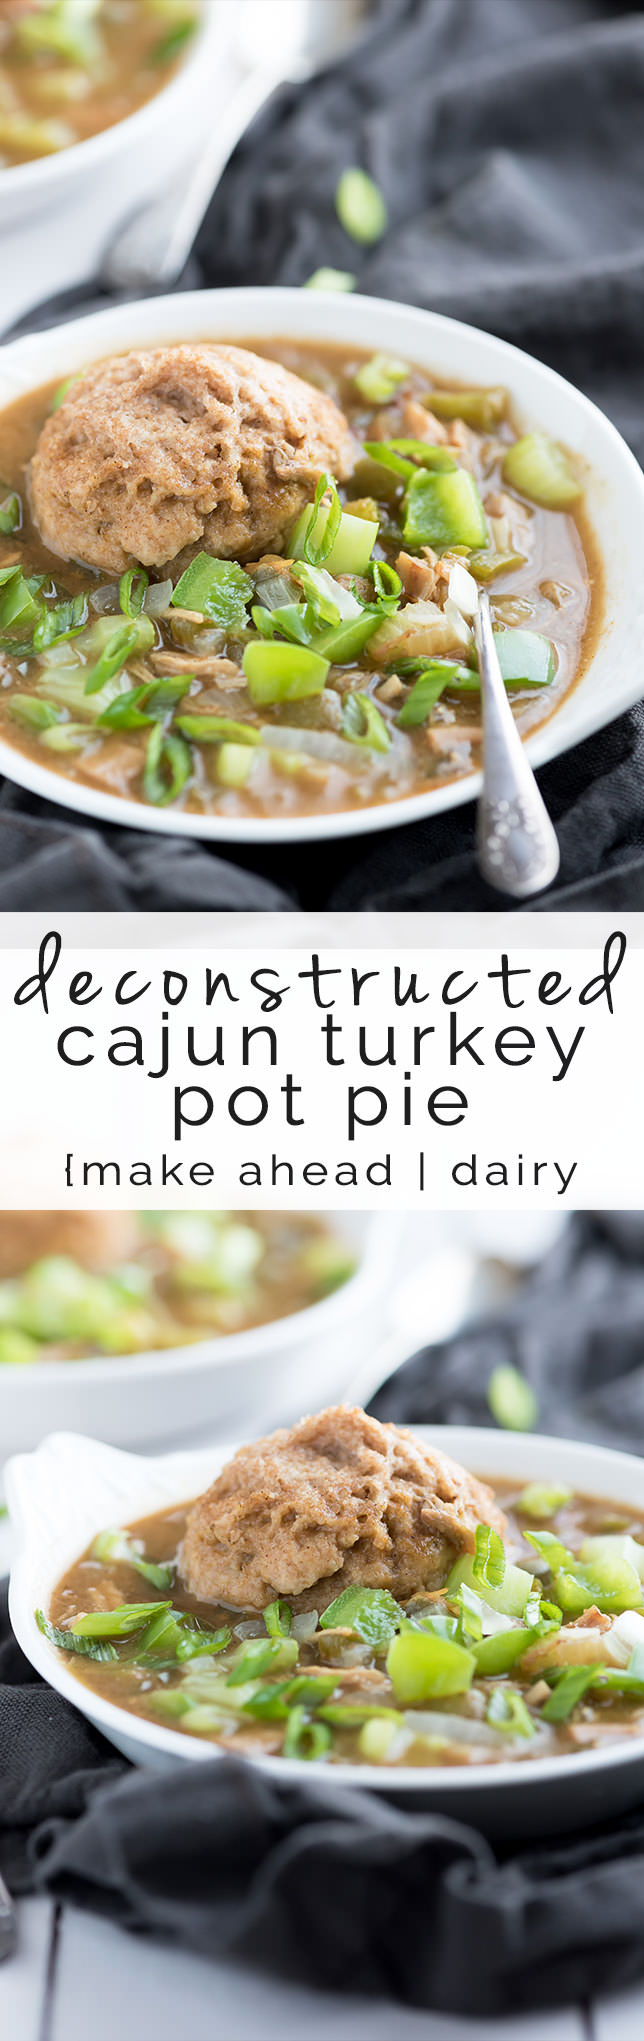 Easy Turkey Pot Pie Recipe, With Leftovers, Leftover, Clean Eating, Homemade, Healthy, Filling, From Scratch, Comfort Food, Leftover Turkey, Dairy Free